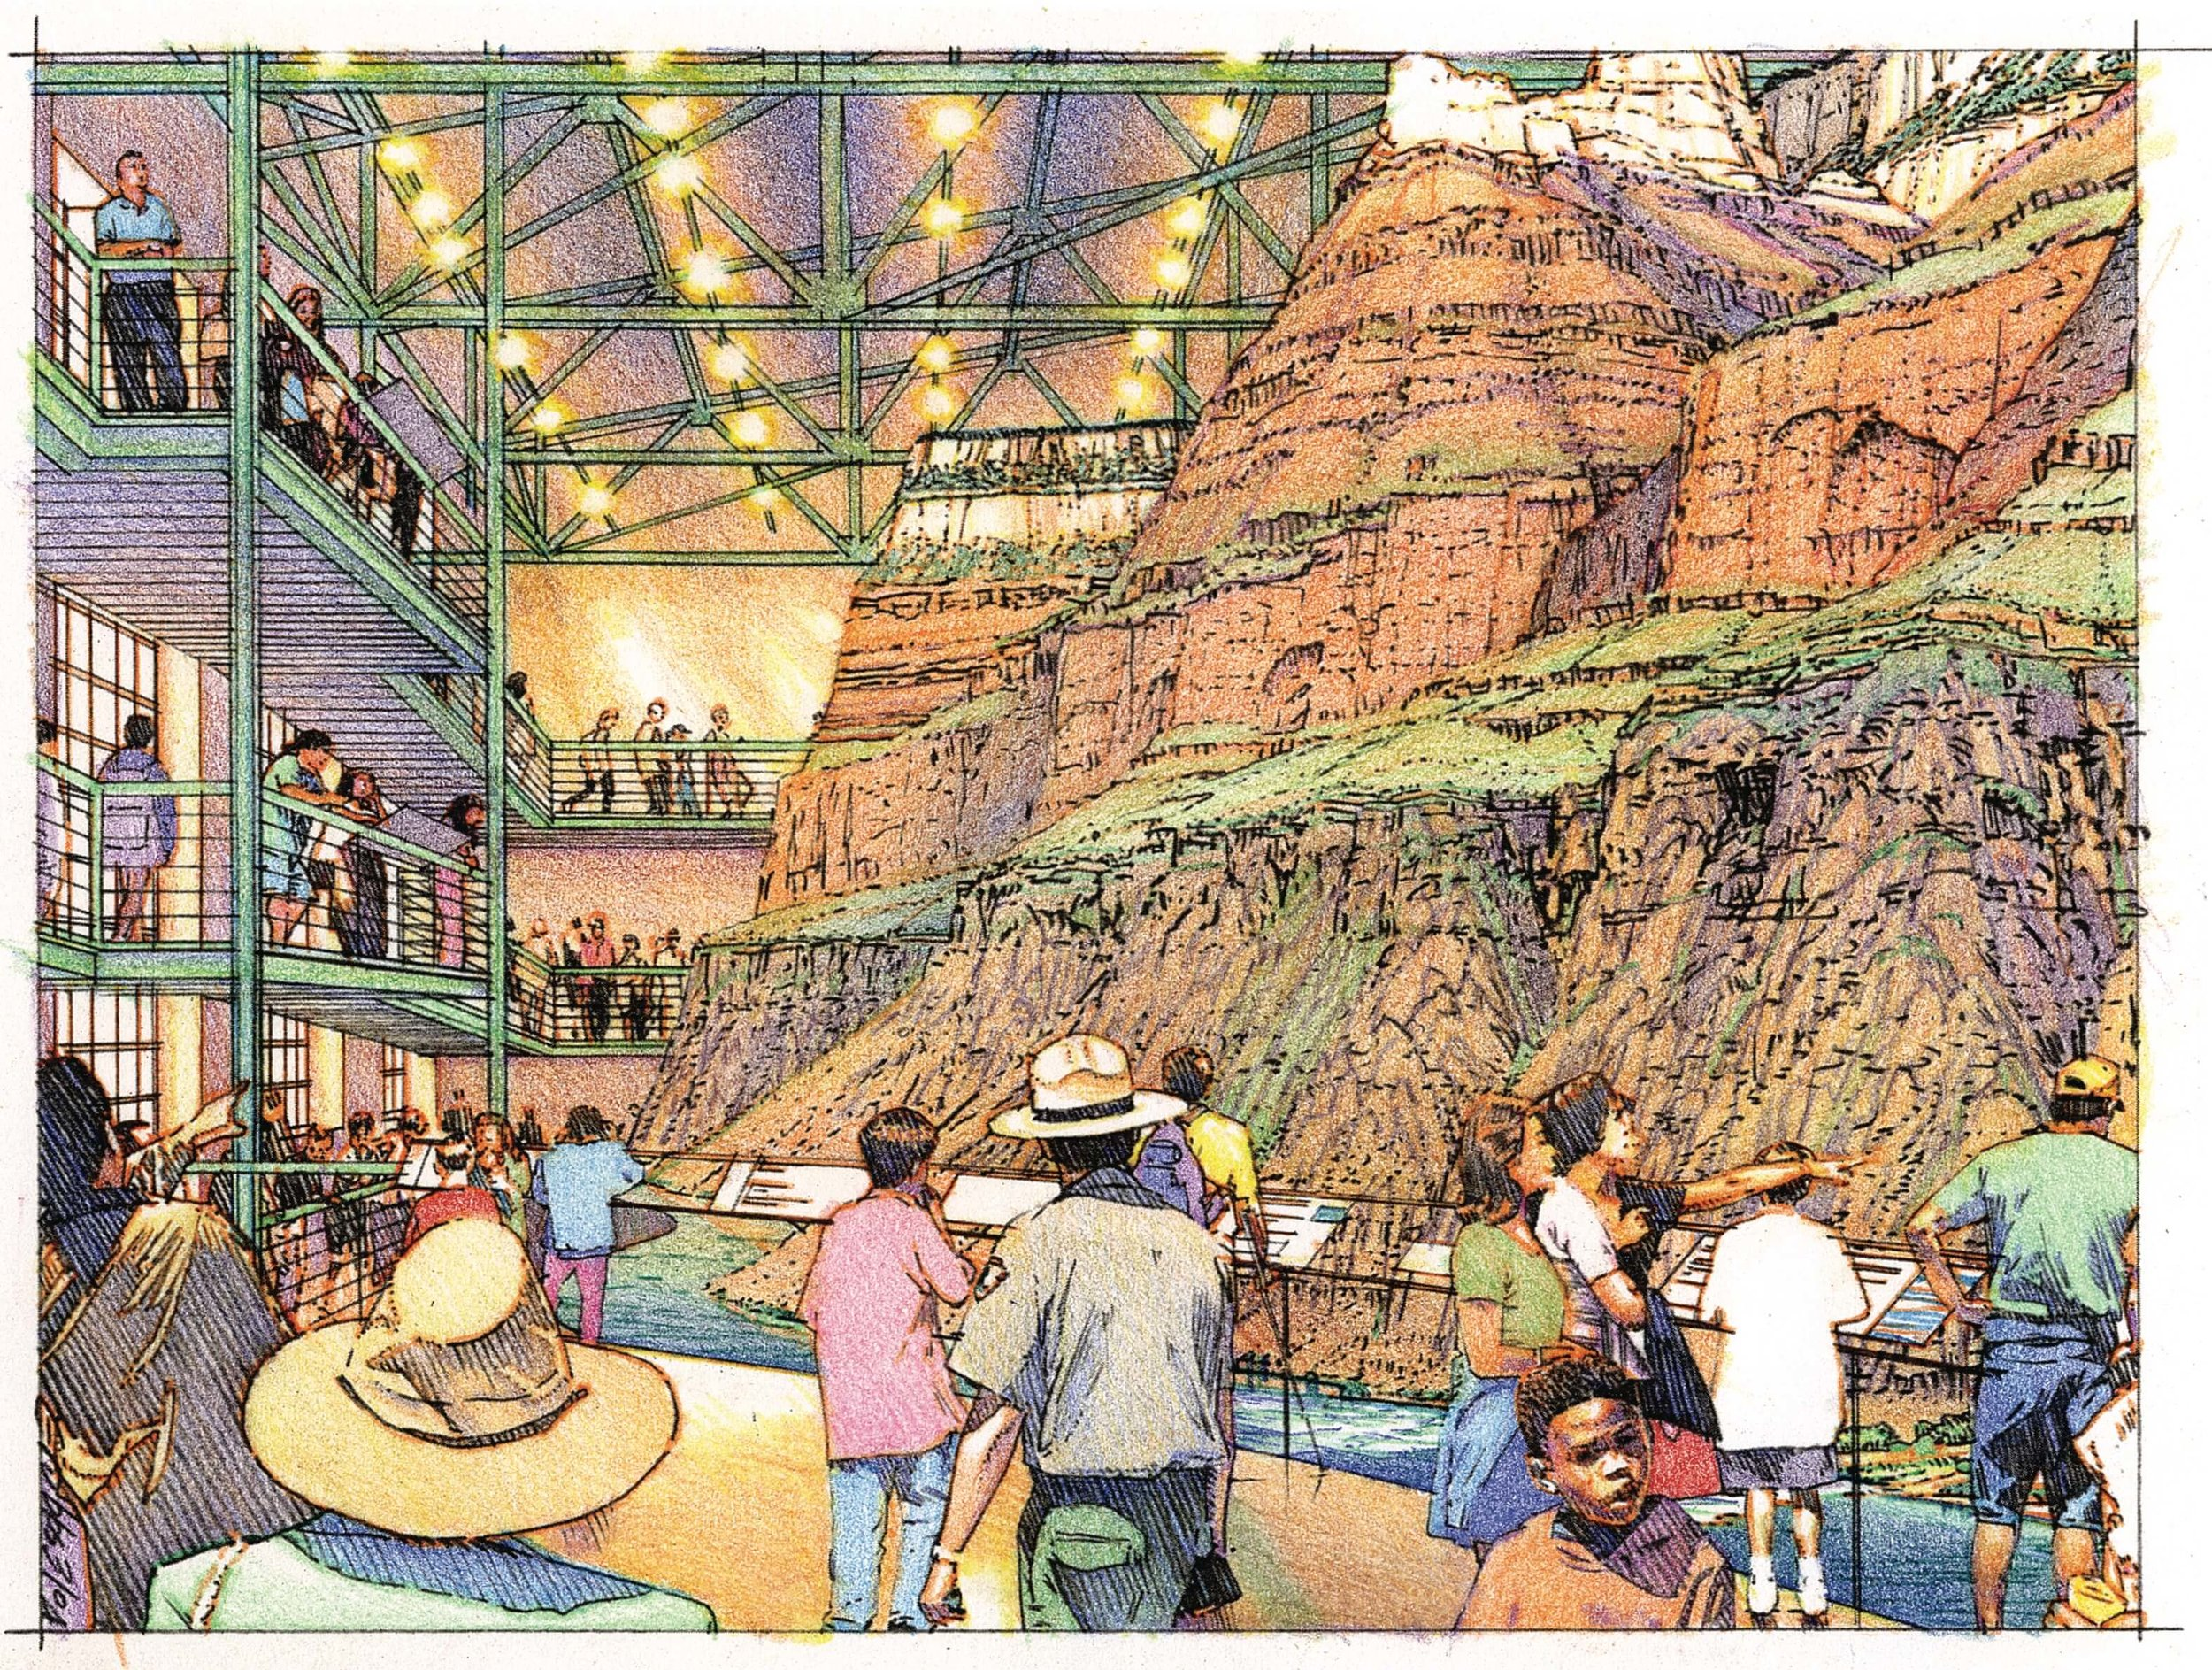 2-Grand Canyon Village-Interior-Pfau Long Architecture-The Sibbett Group-Christopher Grubbs.jpg